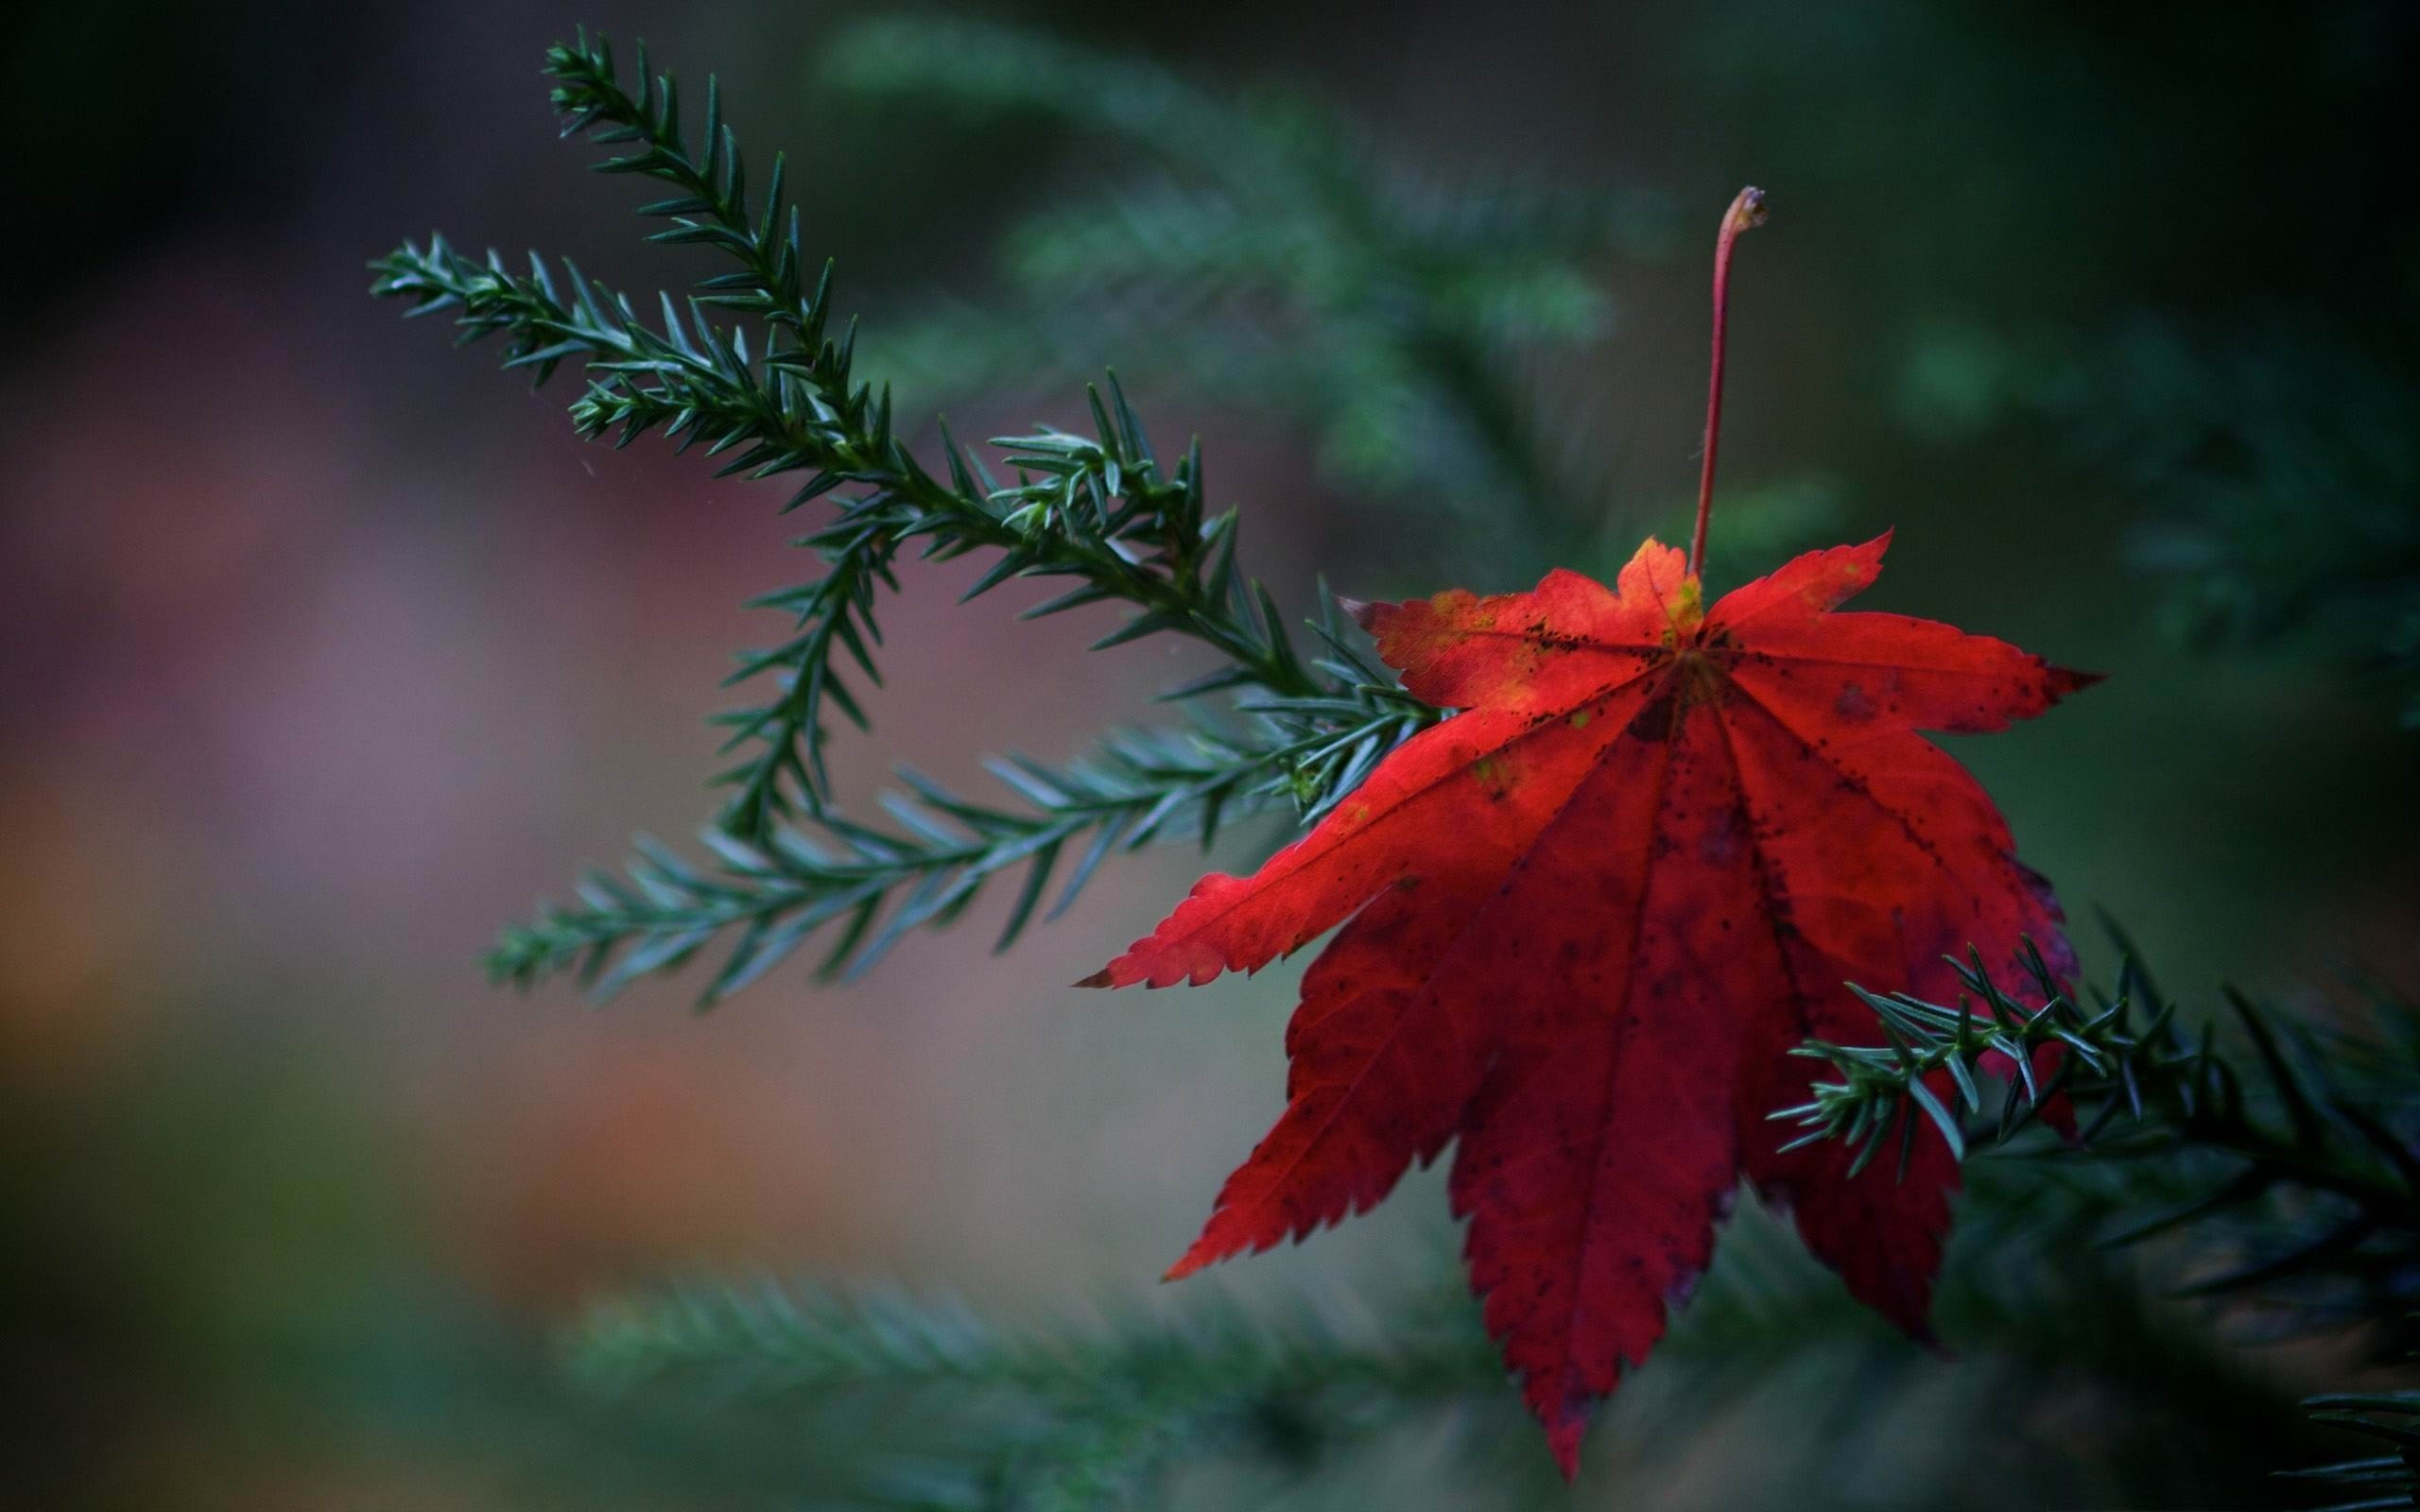 Red and Green Leaf Nature Rain Wallpaper HD